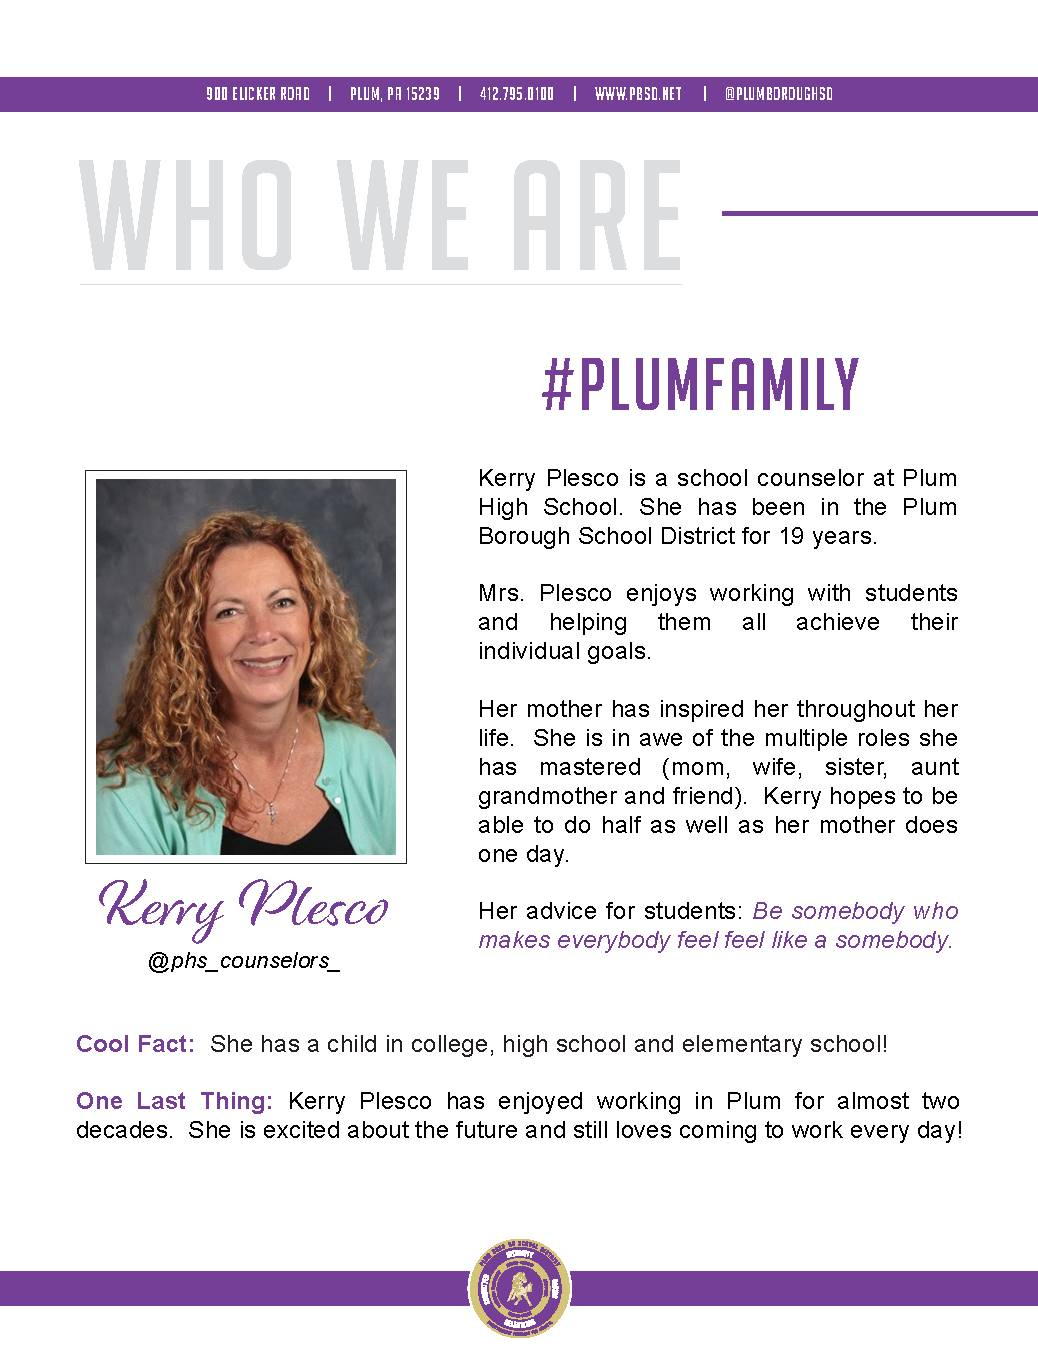 Who We Are Wednesday features Kerry Plesco.